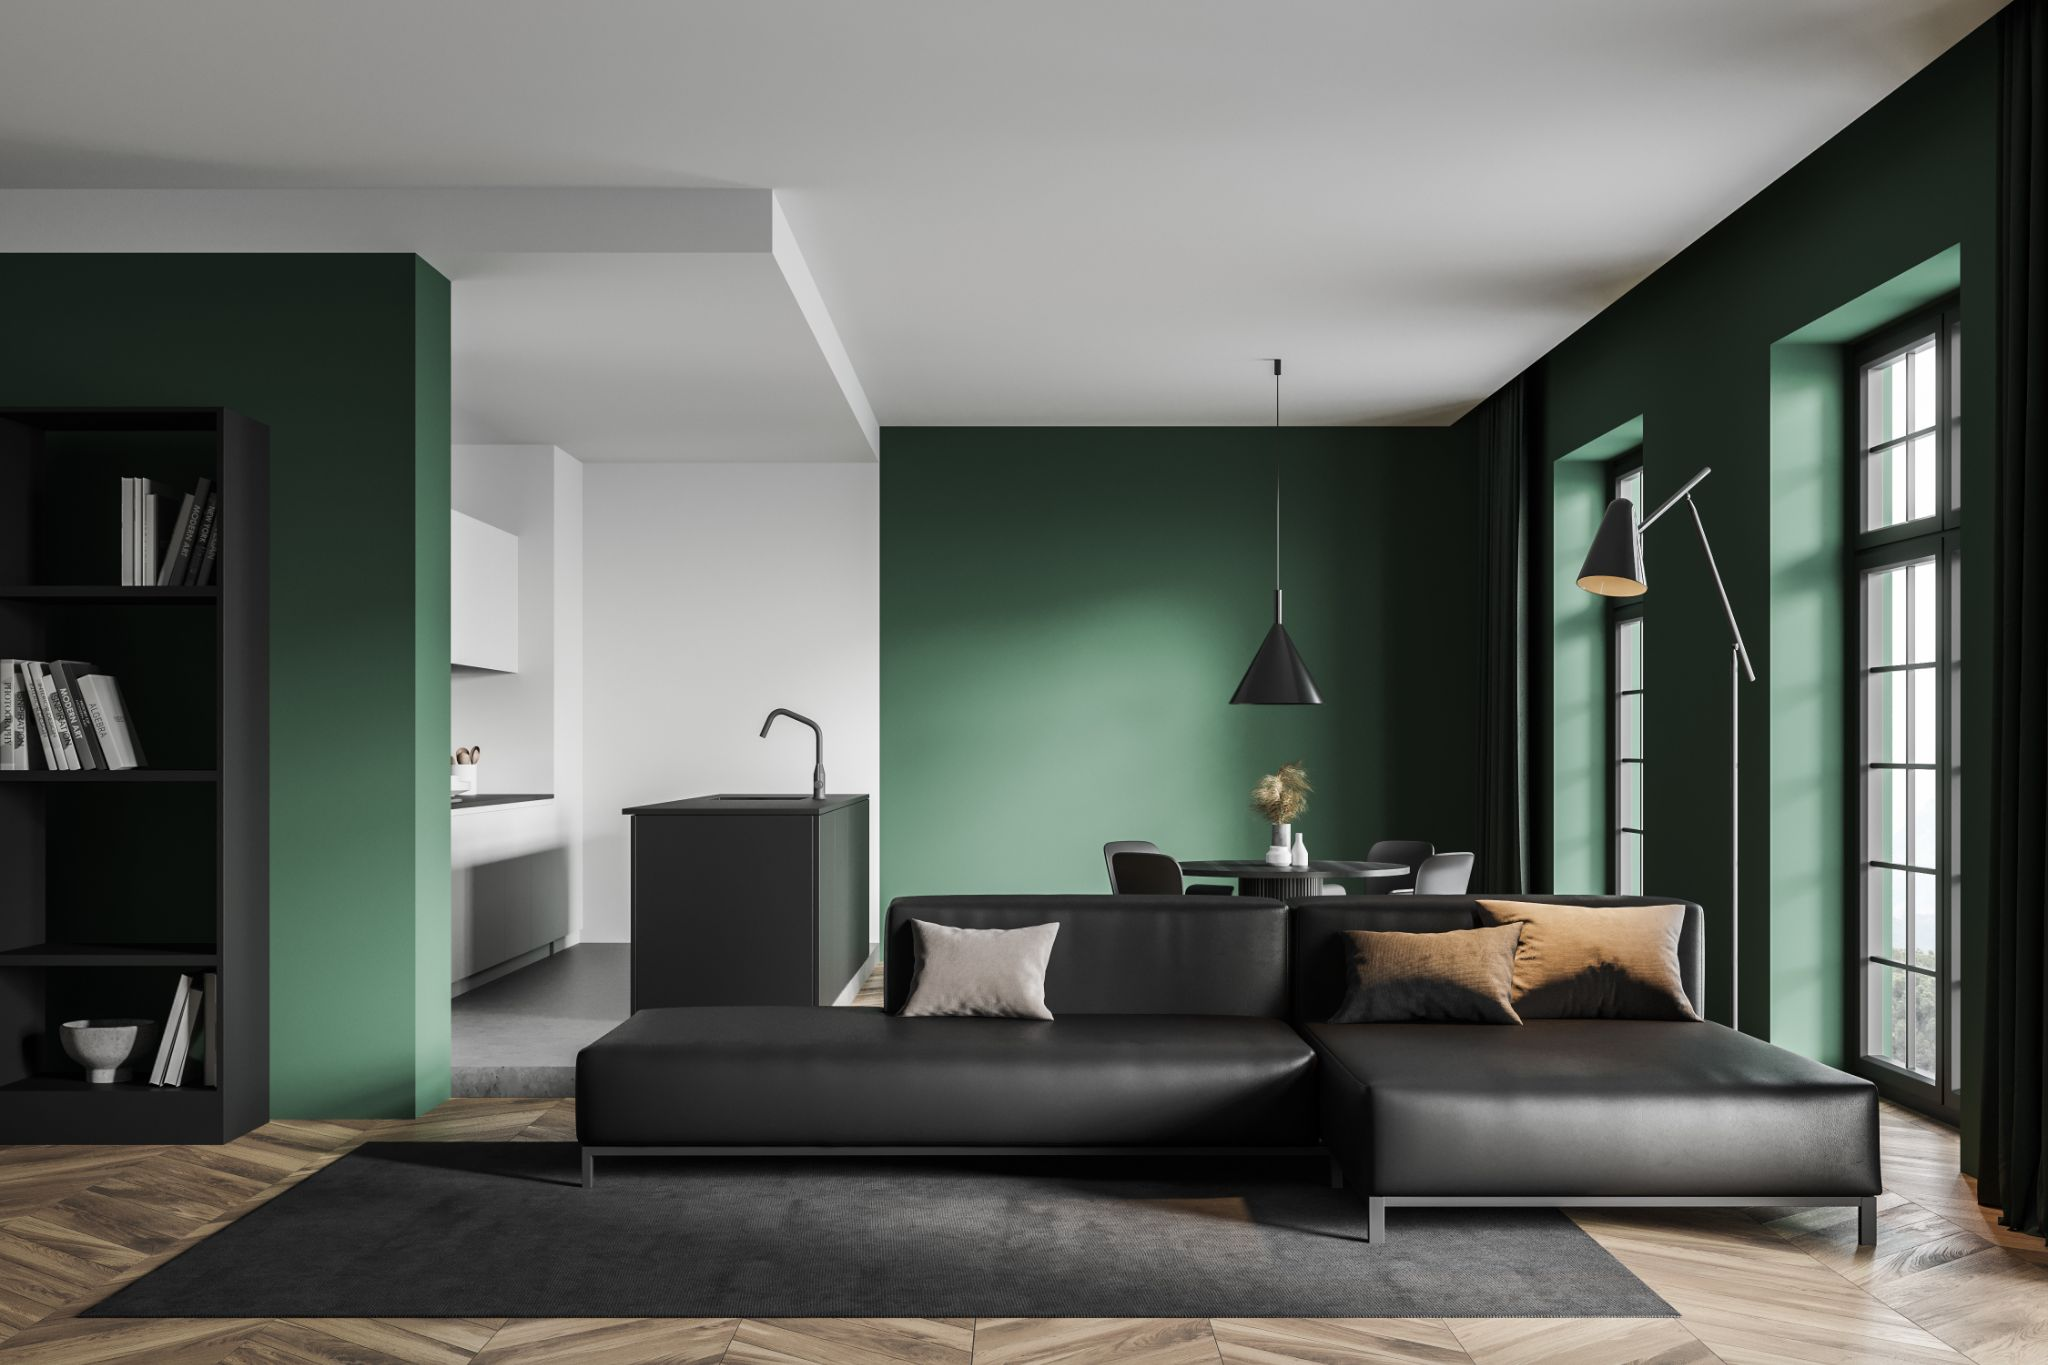 Interior of modern living room with white and green walls, wooden floor and big sofa